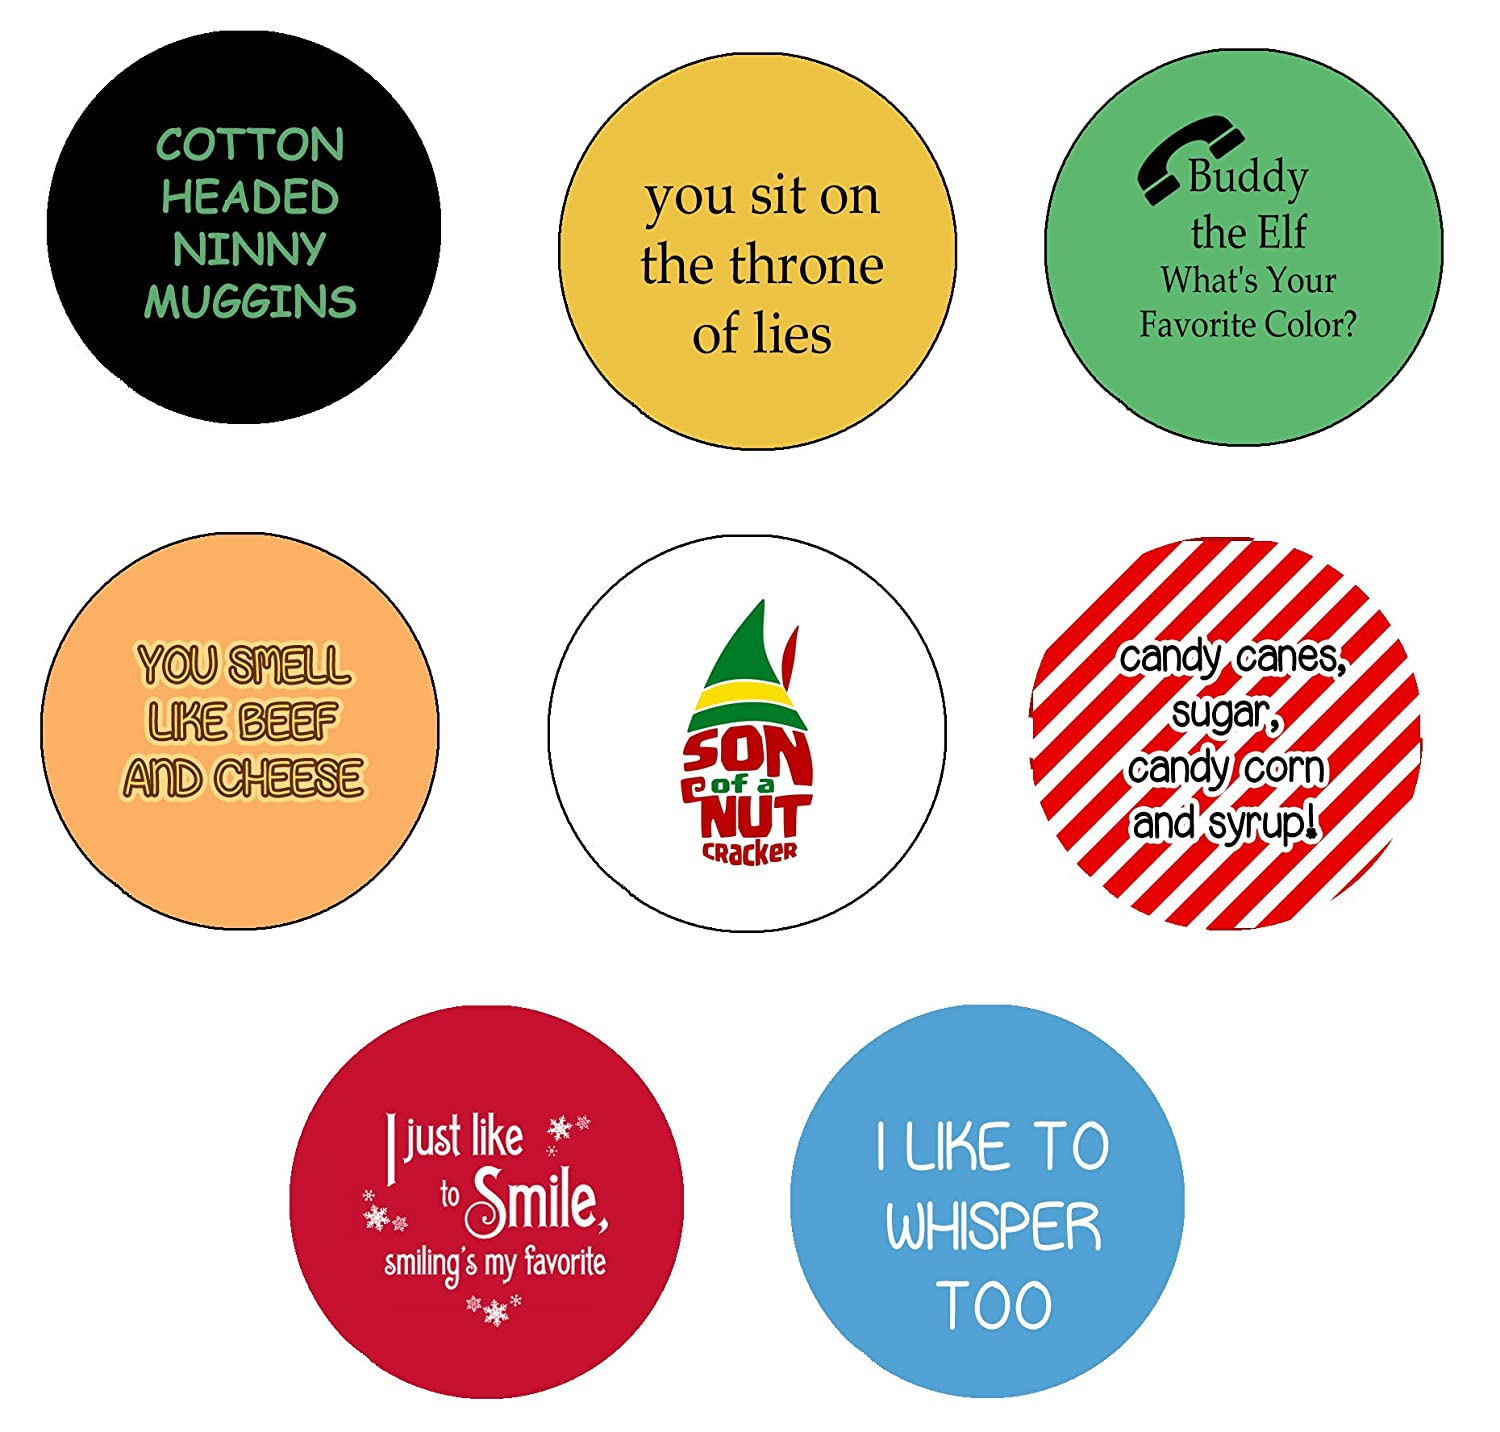 Amazon.com: Buddy the Elf Quotes Pinback Button Pin 1.25 ...